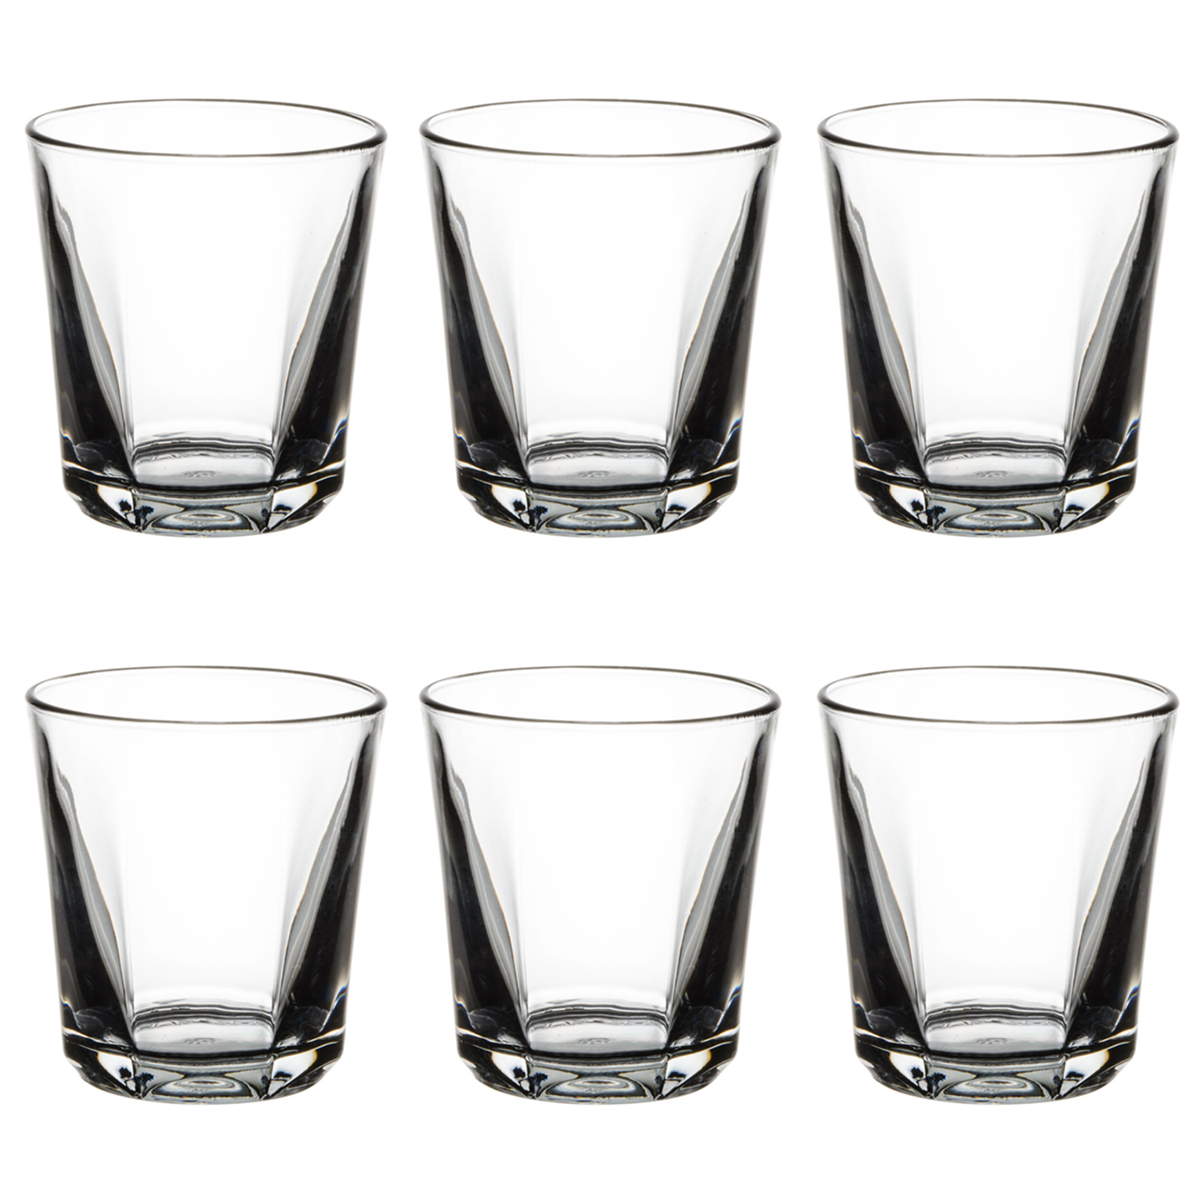 6 Anchor Clarisse 12oz Rocks Glasses 77790R Cocktail Wholesale Bulk Lot Barware